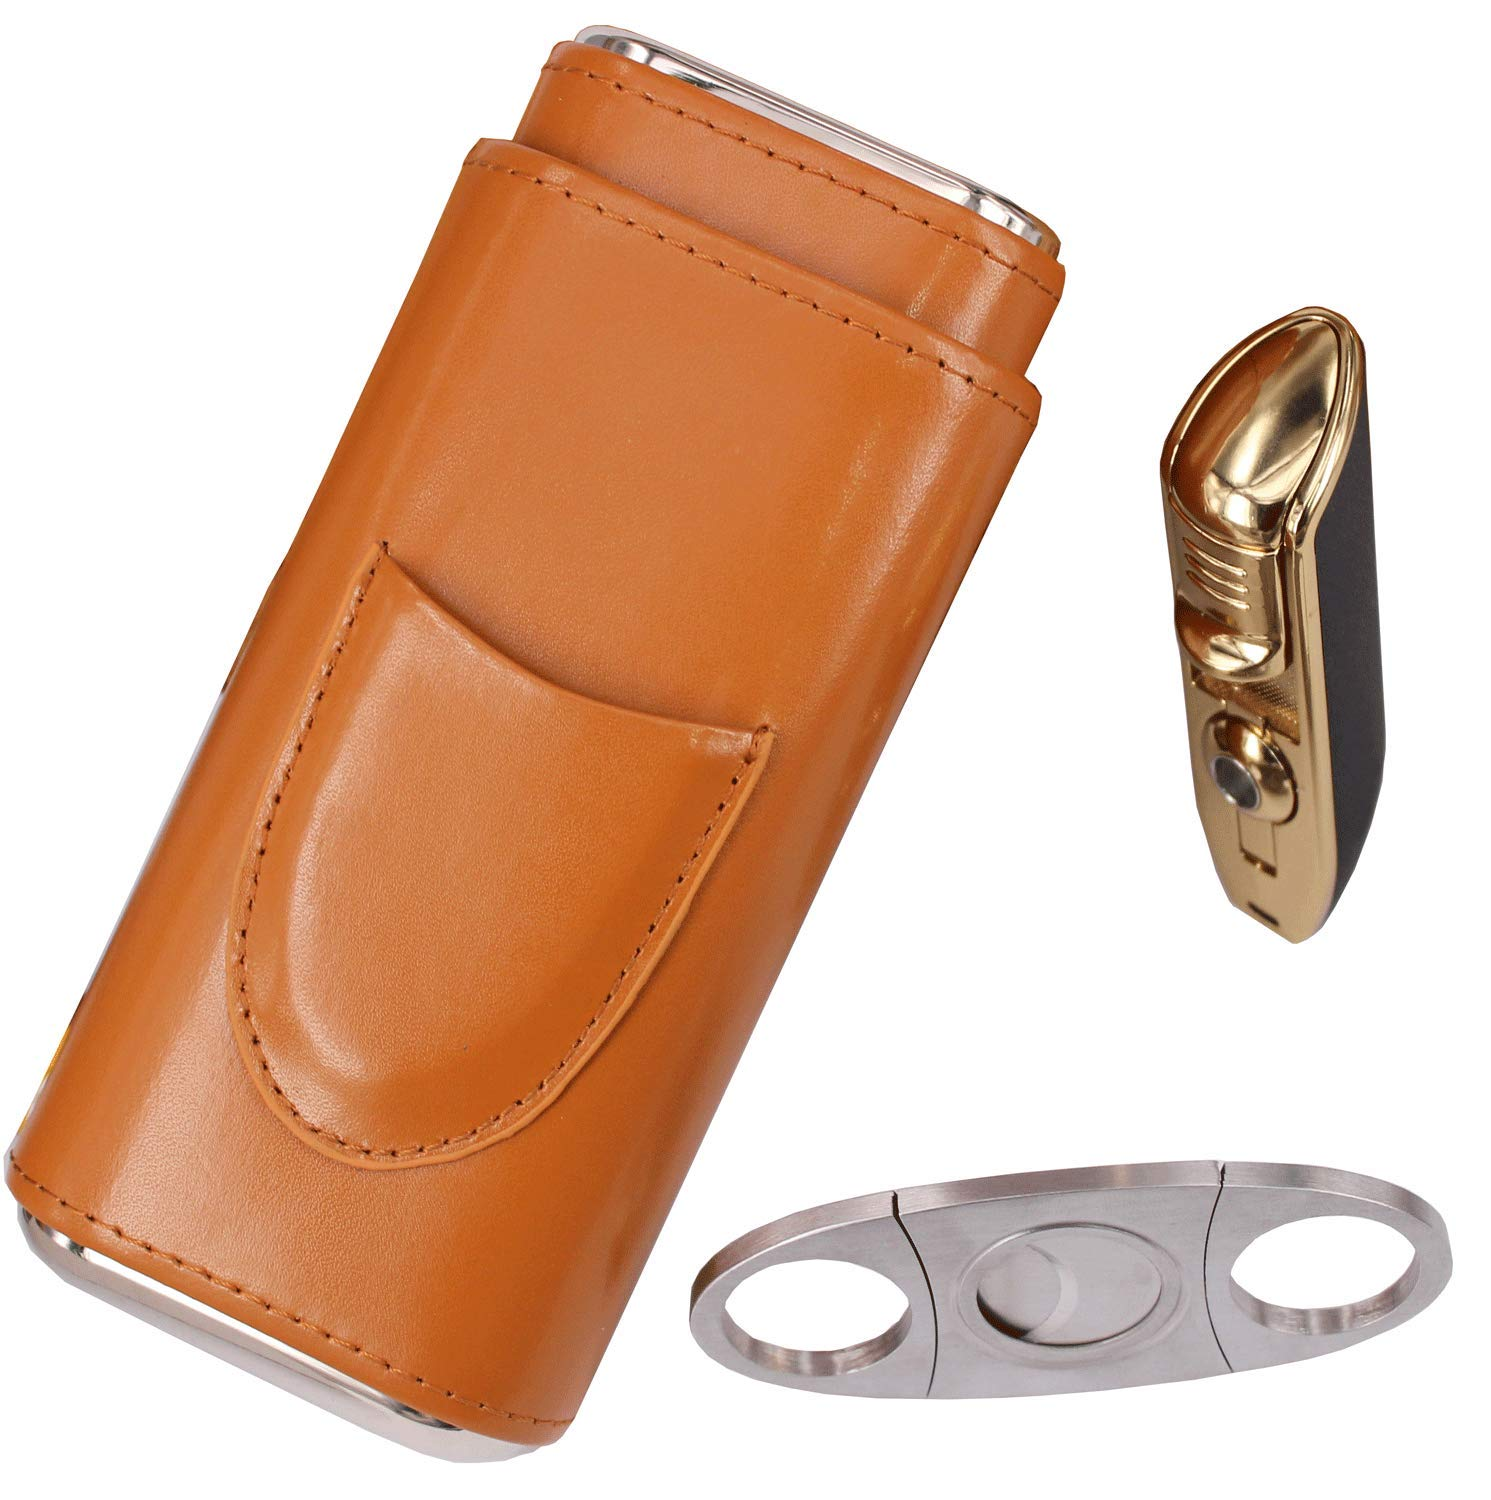 AMANCY Classy Cigar Case with Lighter and Cutter Great Gift Set